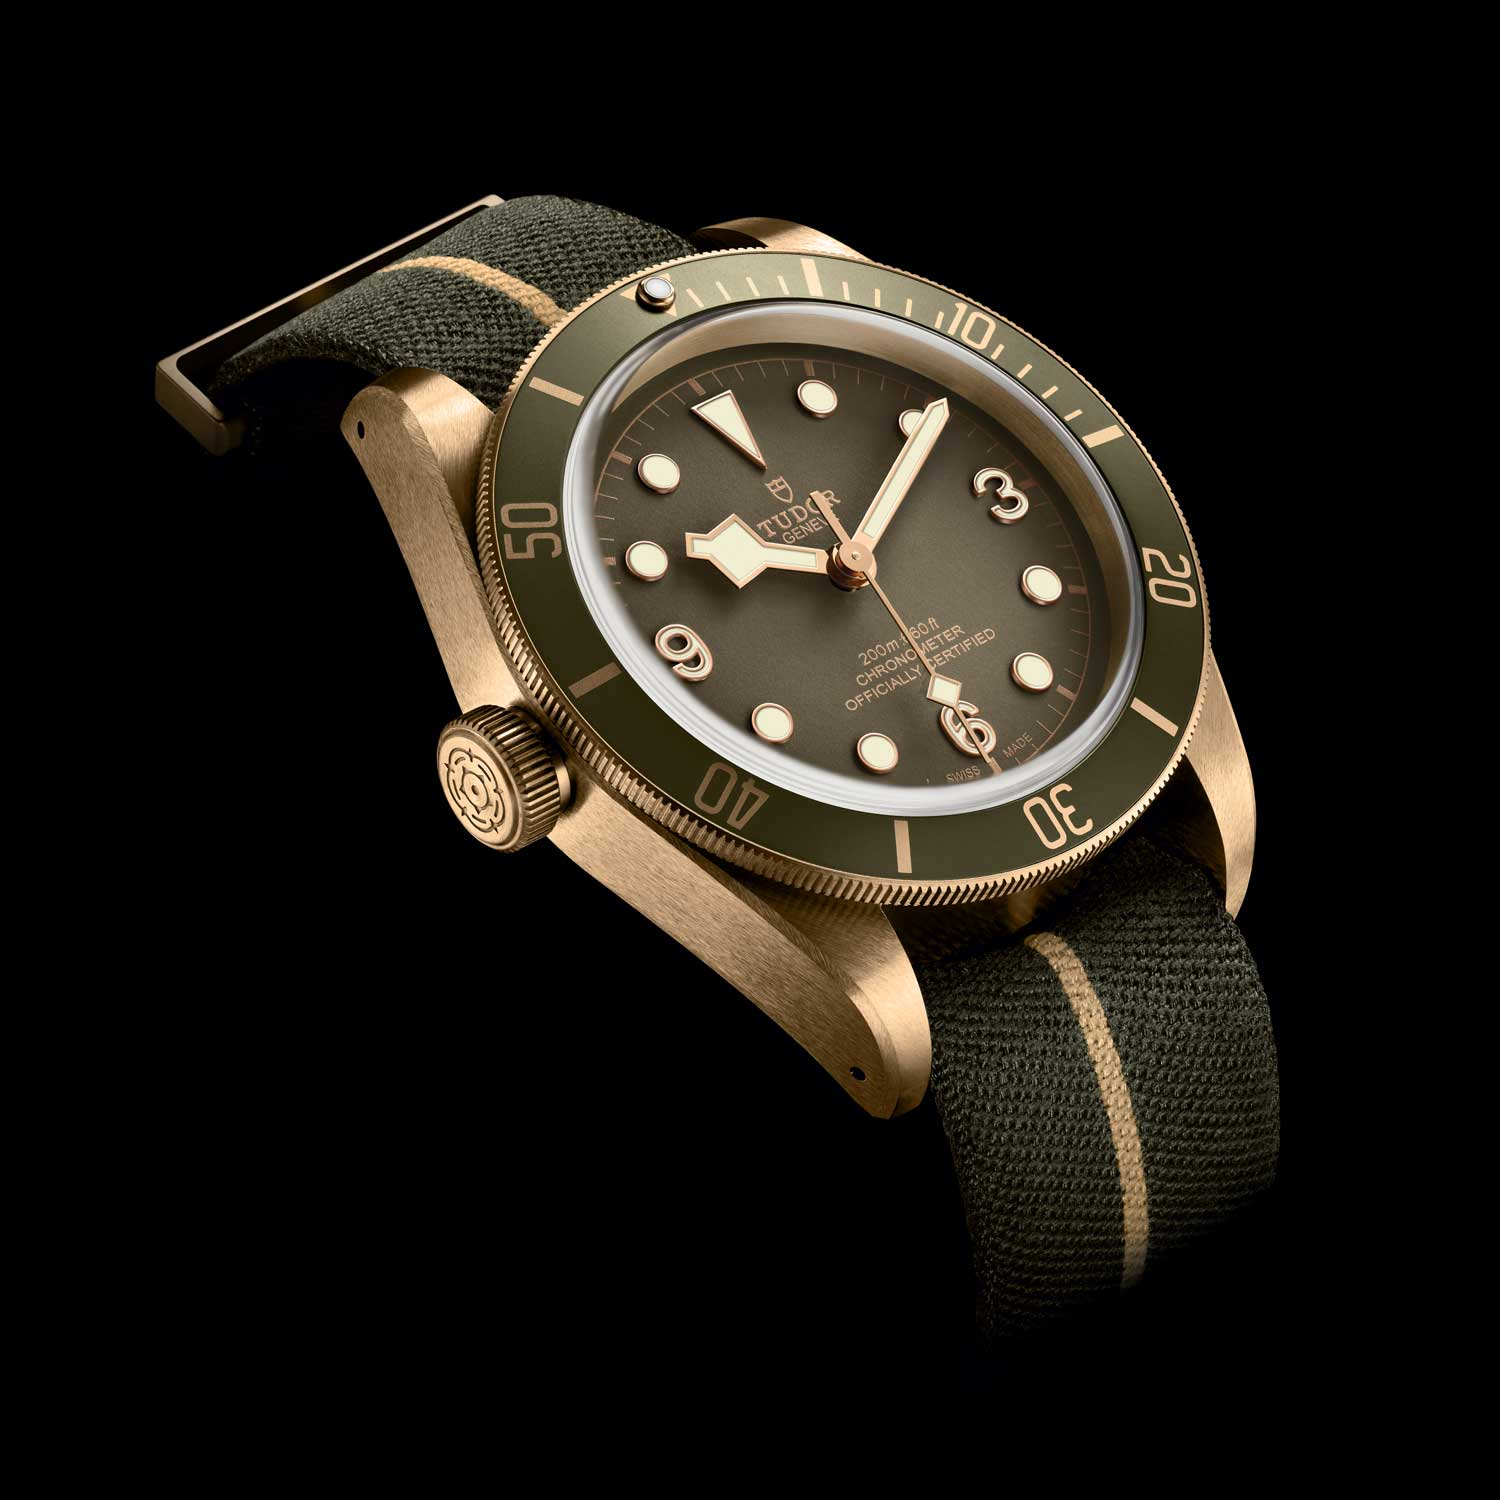 Tudor Black Bay Bronze One Ref 7925/001